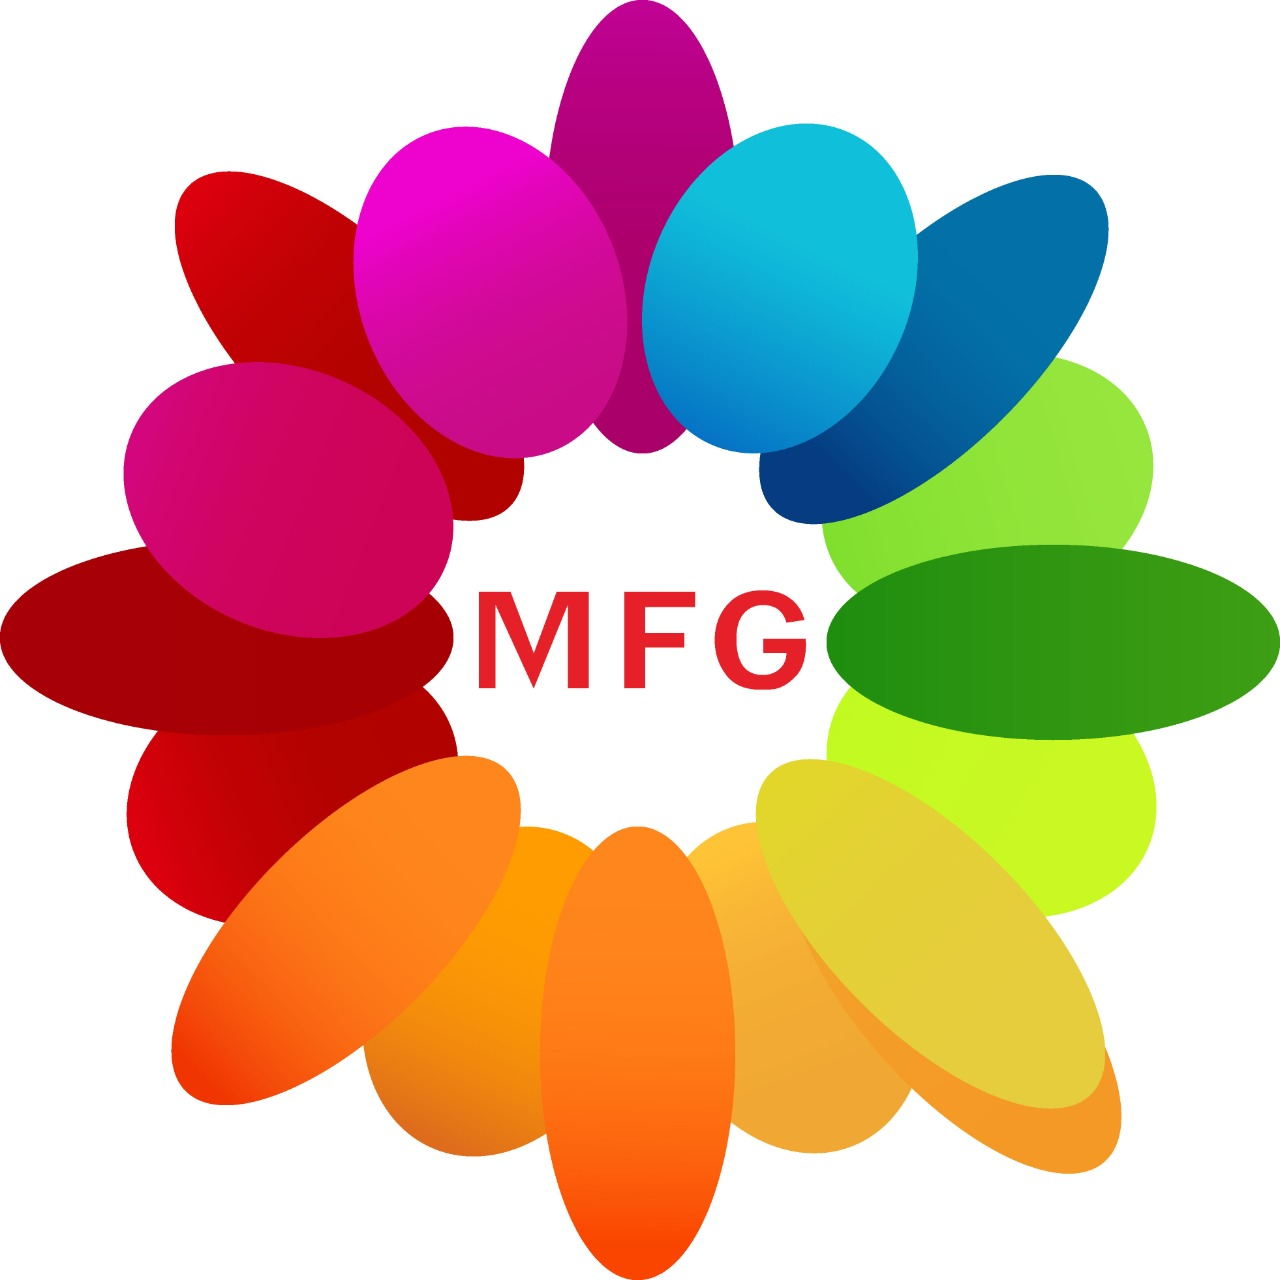 Bunch of yellow lilies with 1 feet height teddybear